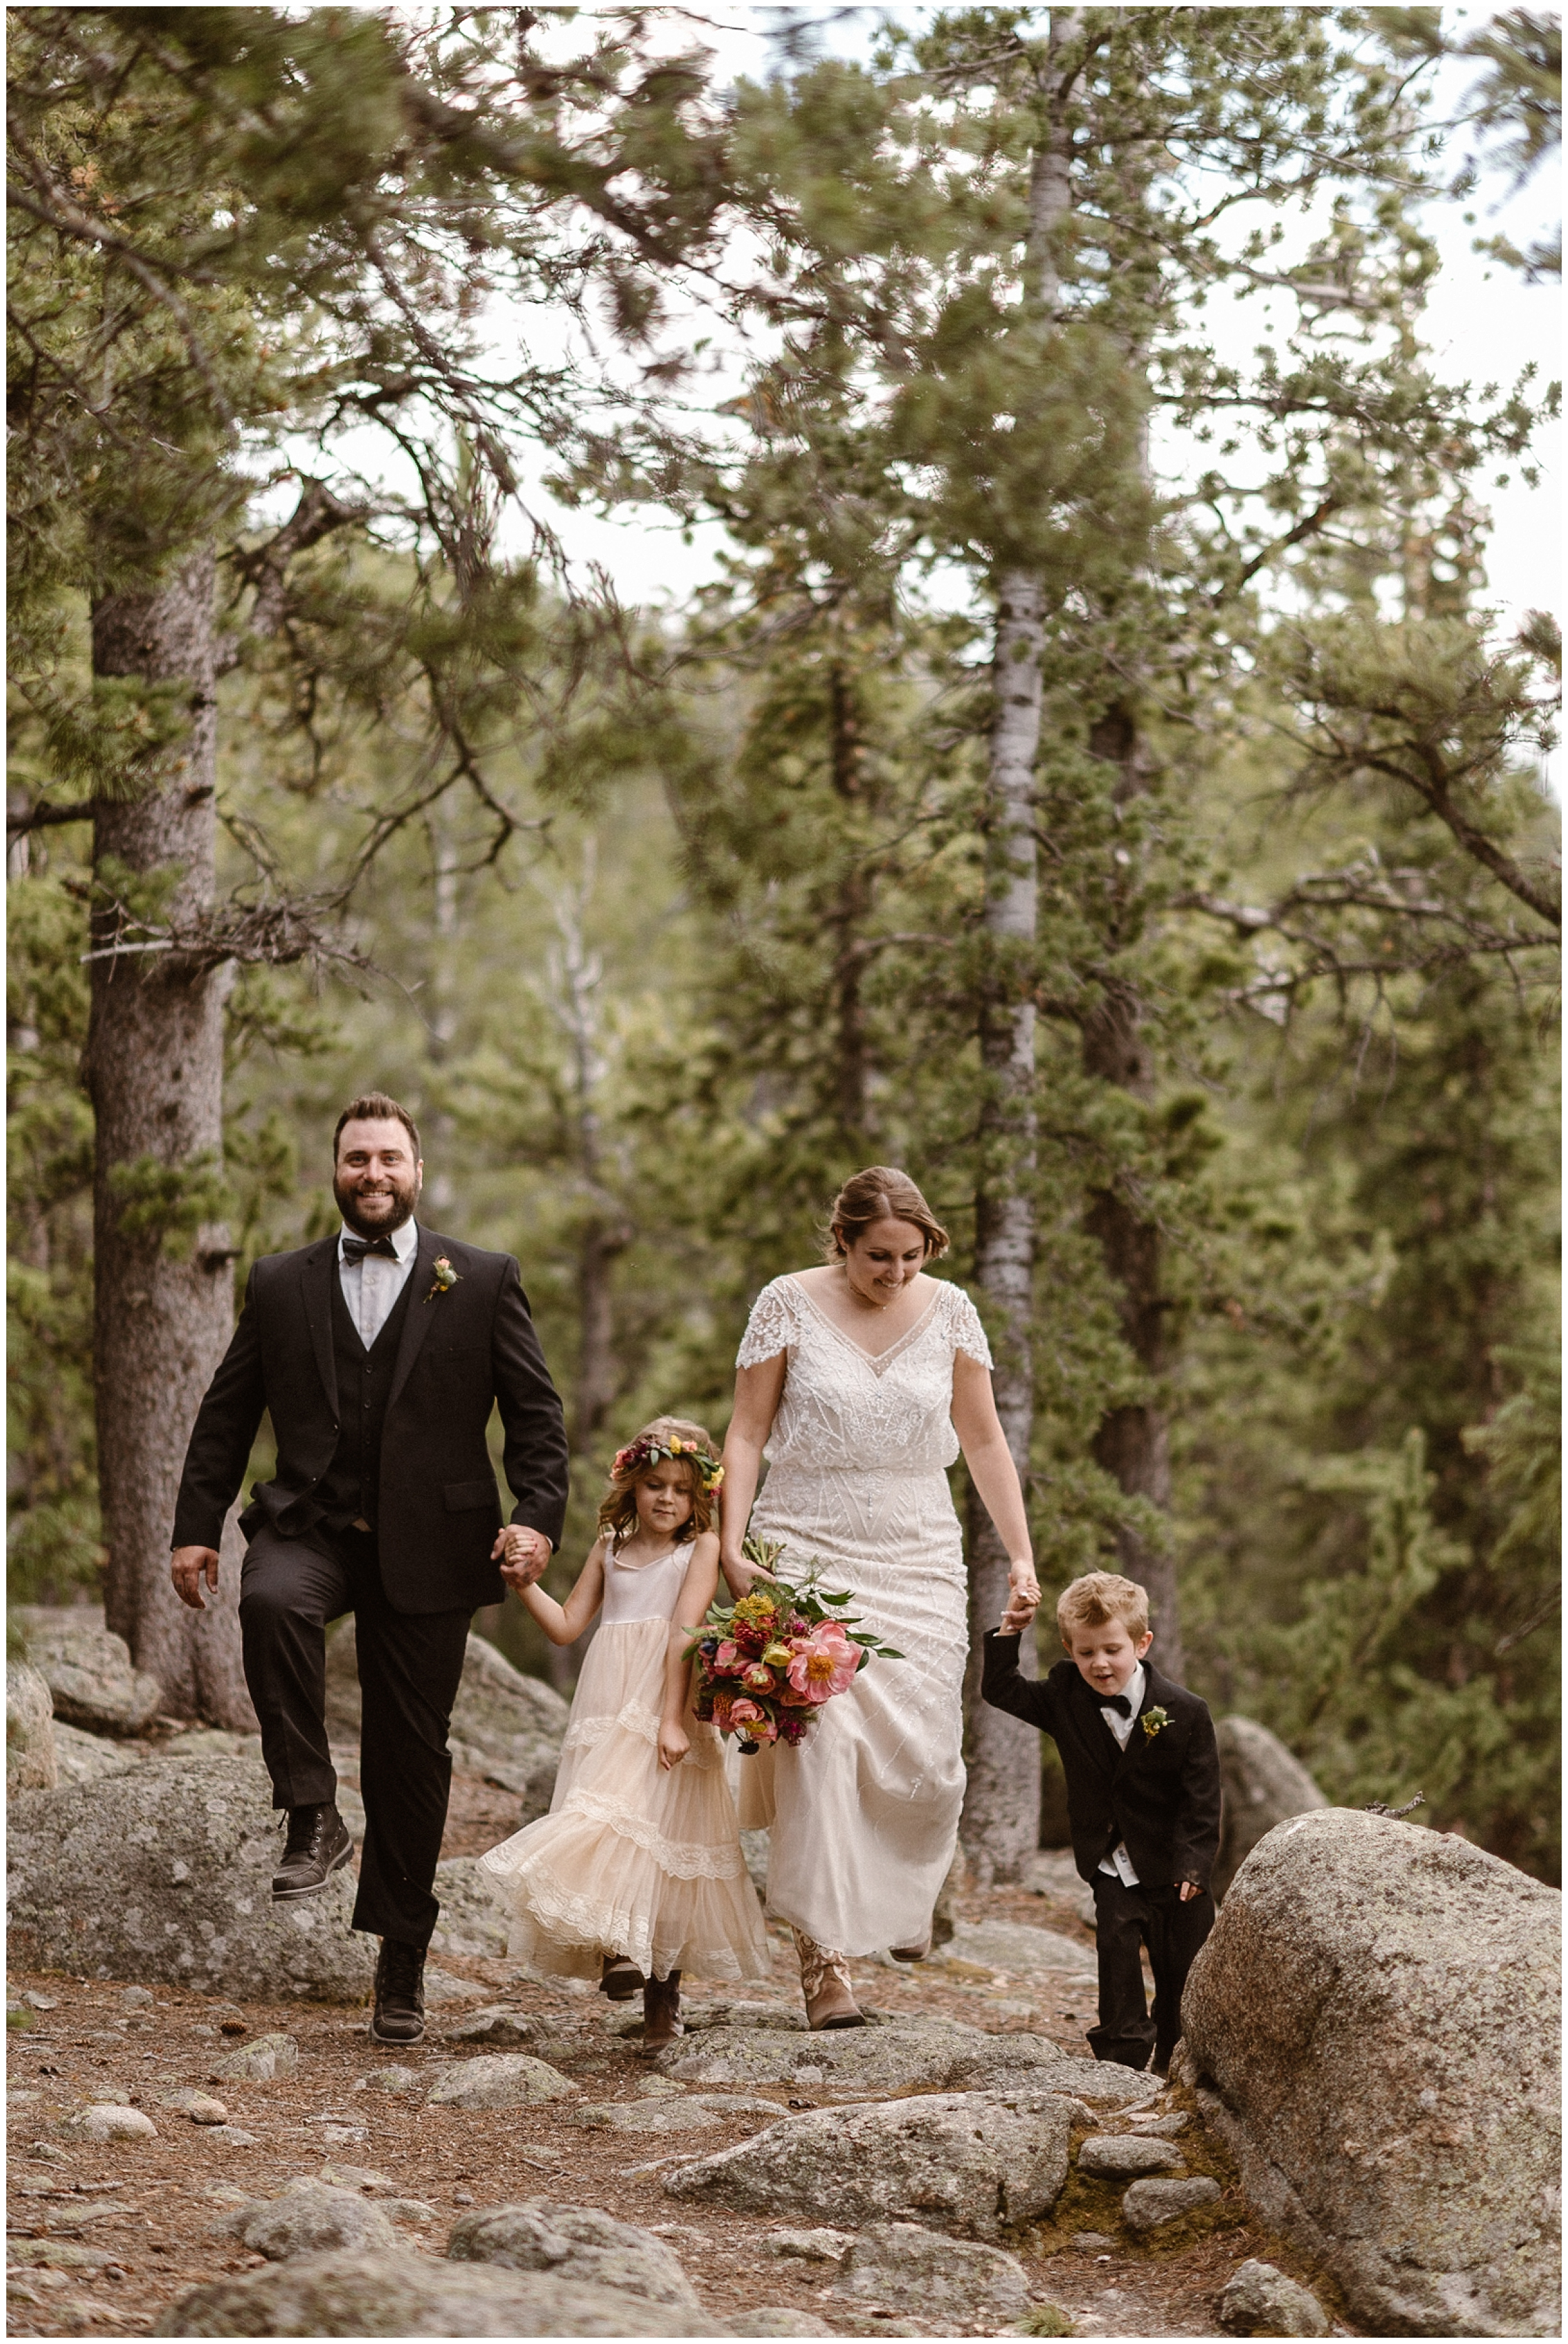 A bride, a groom, and their two children hike down a trail together in their wedding attire! When you choose to elope with kids, you can make your day as adventurou as mild as you want — just be sure to have the elopement day you want!